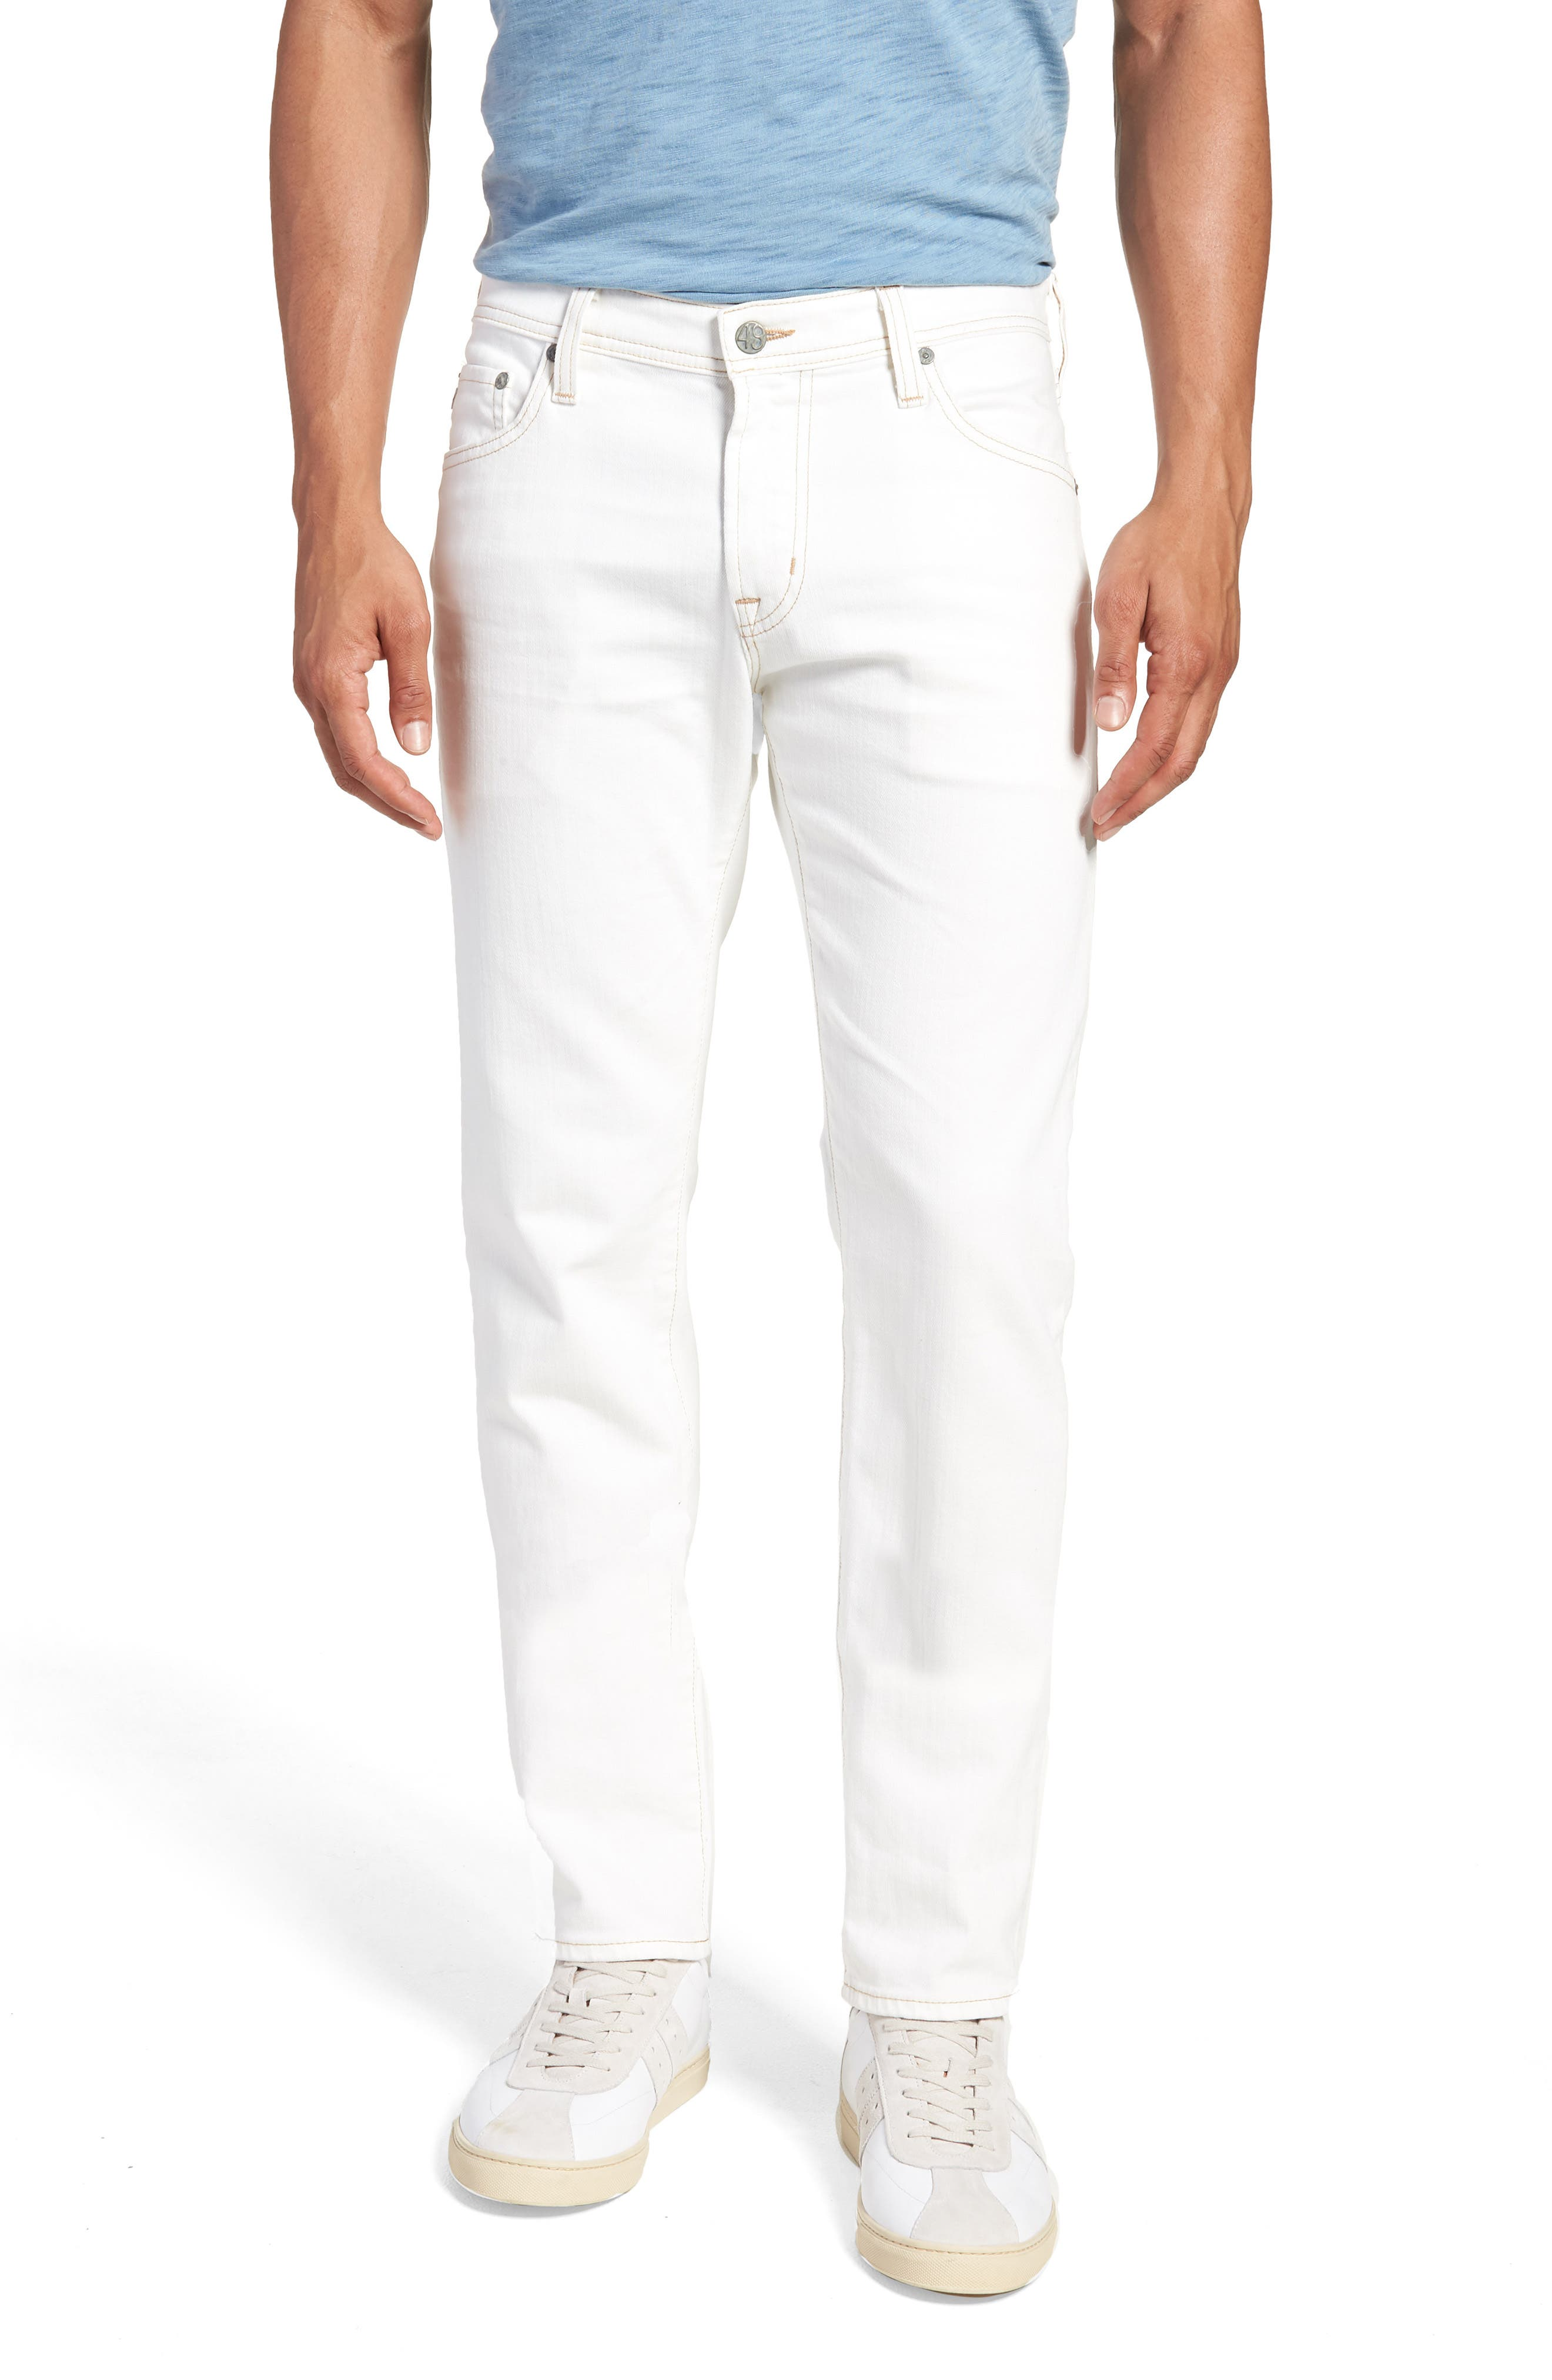 Tellis Slim Fit Jeans,                         Main,                         color, 1 YEAR NEUTRAL WHITE